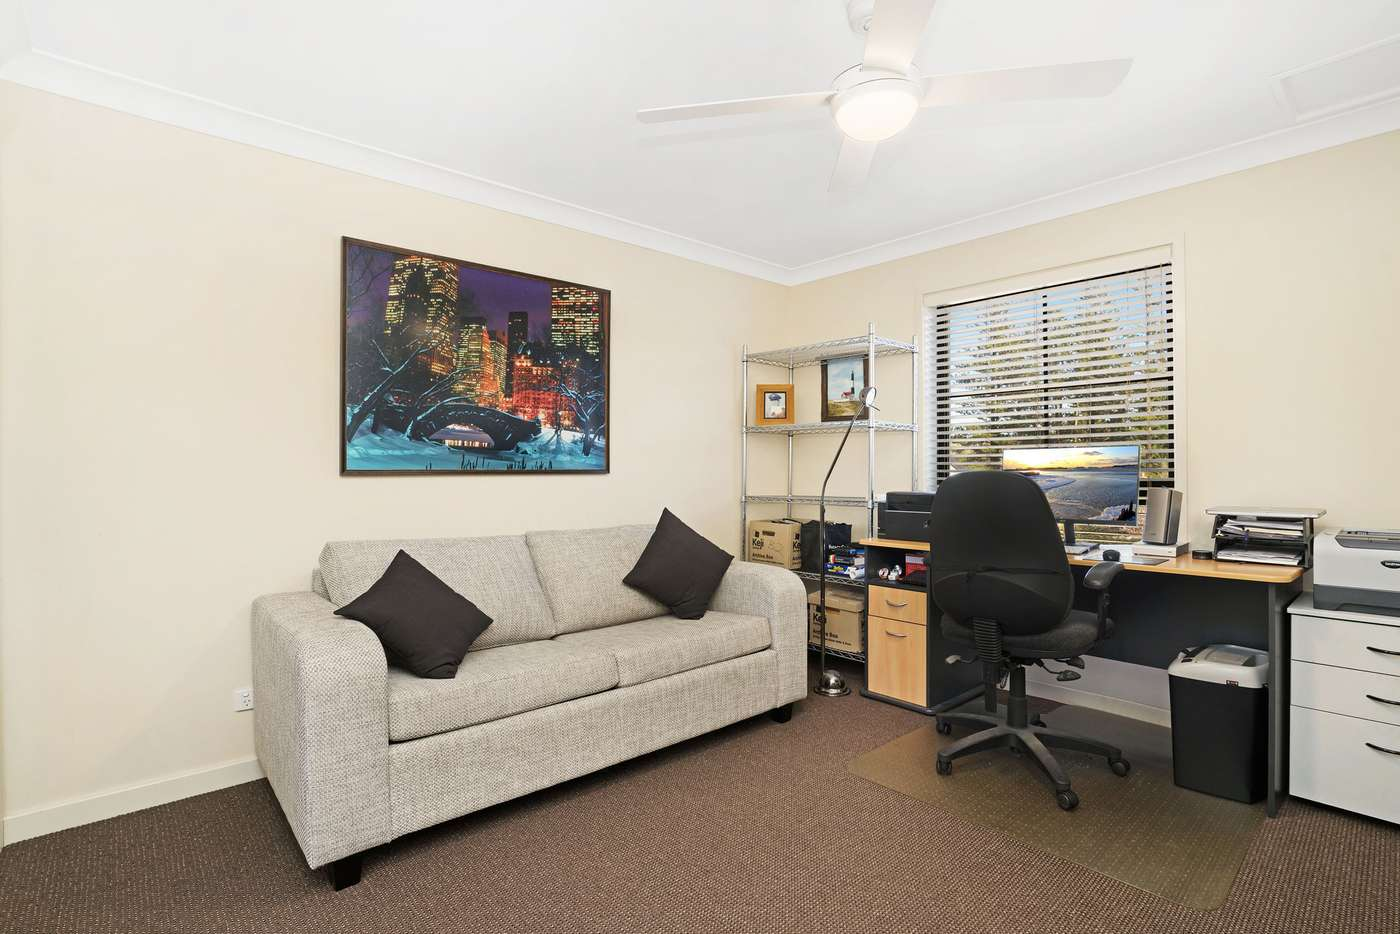 Sixth view of Homely apartment listing, 9/278 Darby Street, Cooks Hill NSW 2300